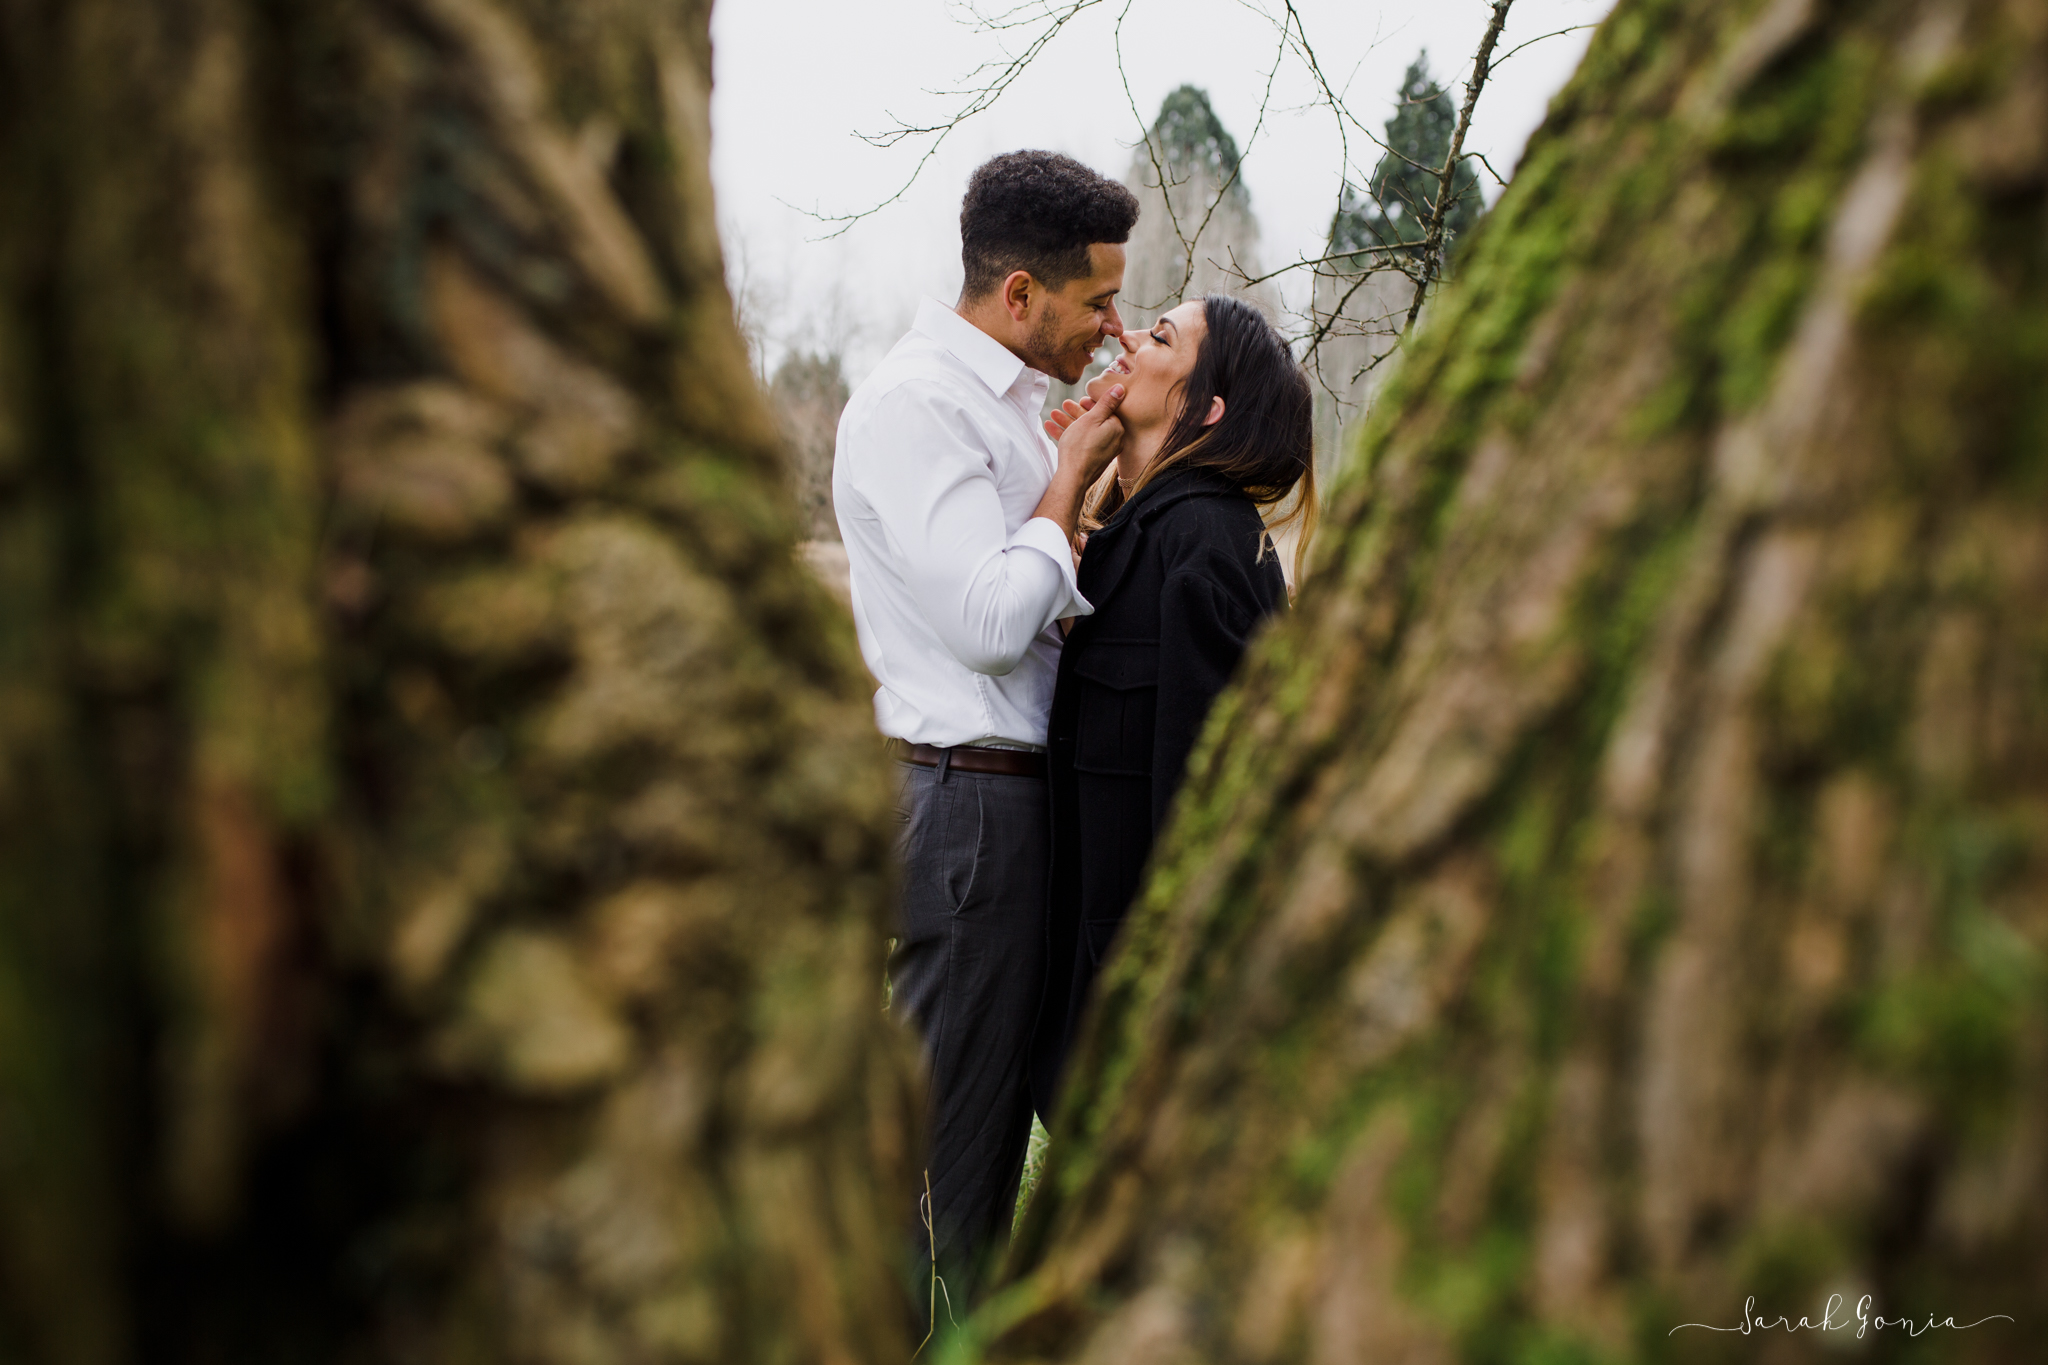 Olympia Photographer Engagement, Love Stories and Weddings Trees